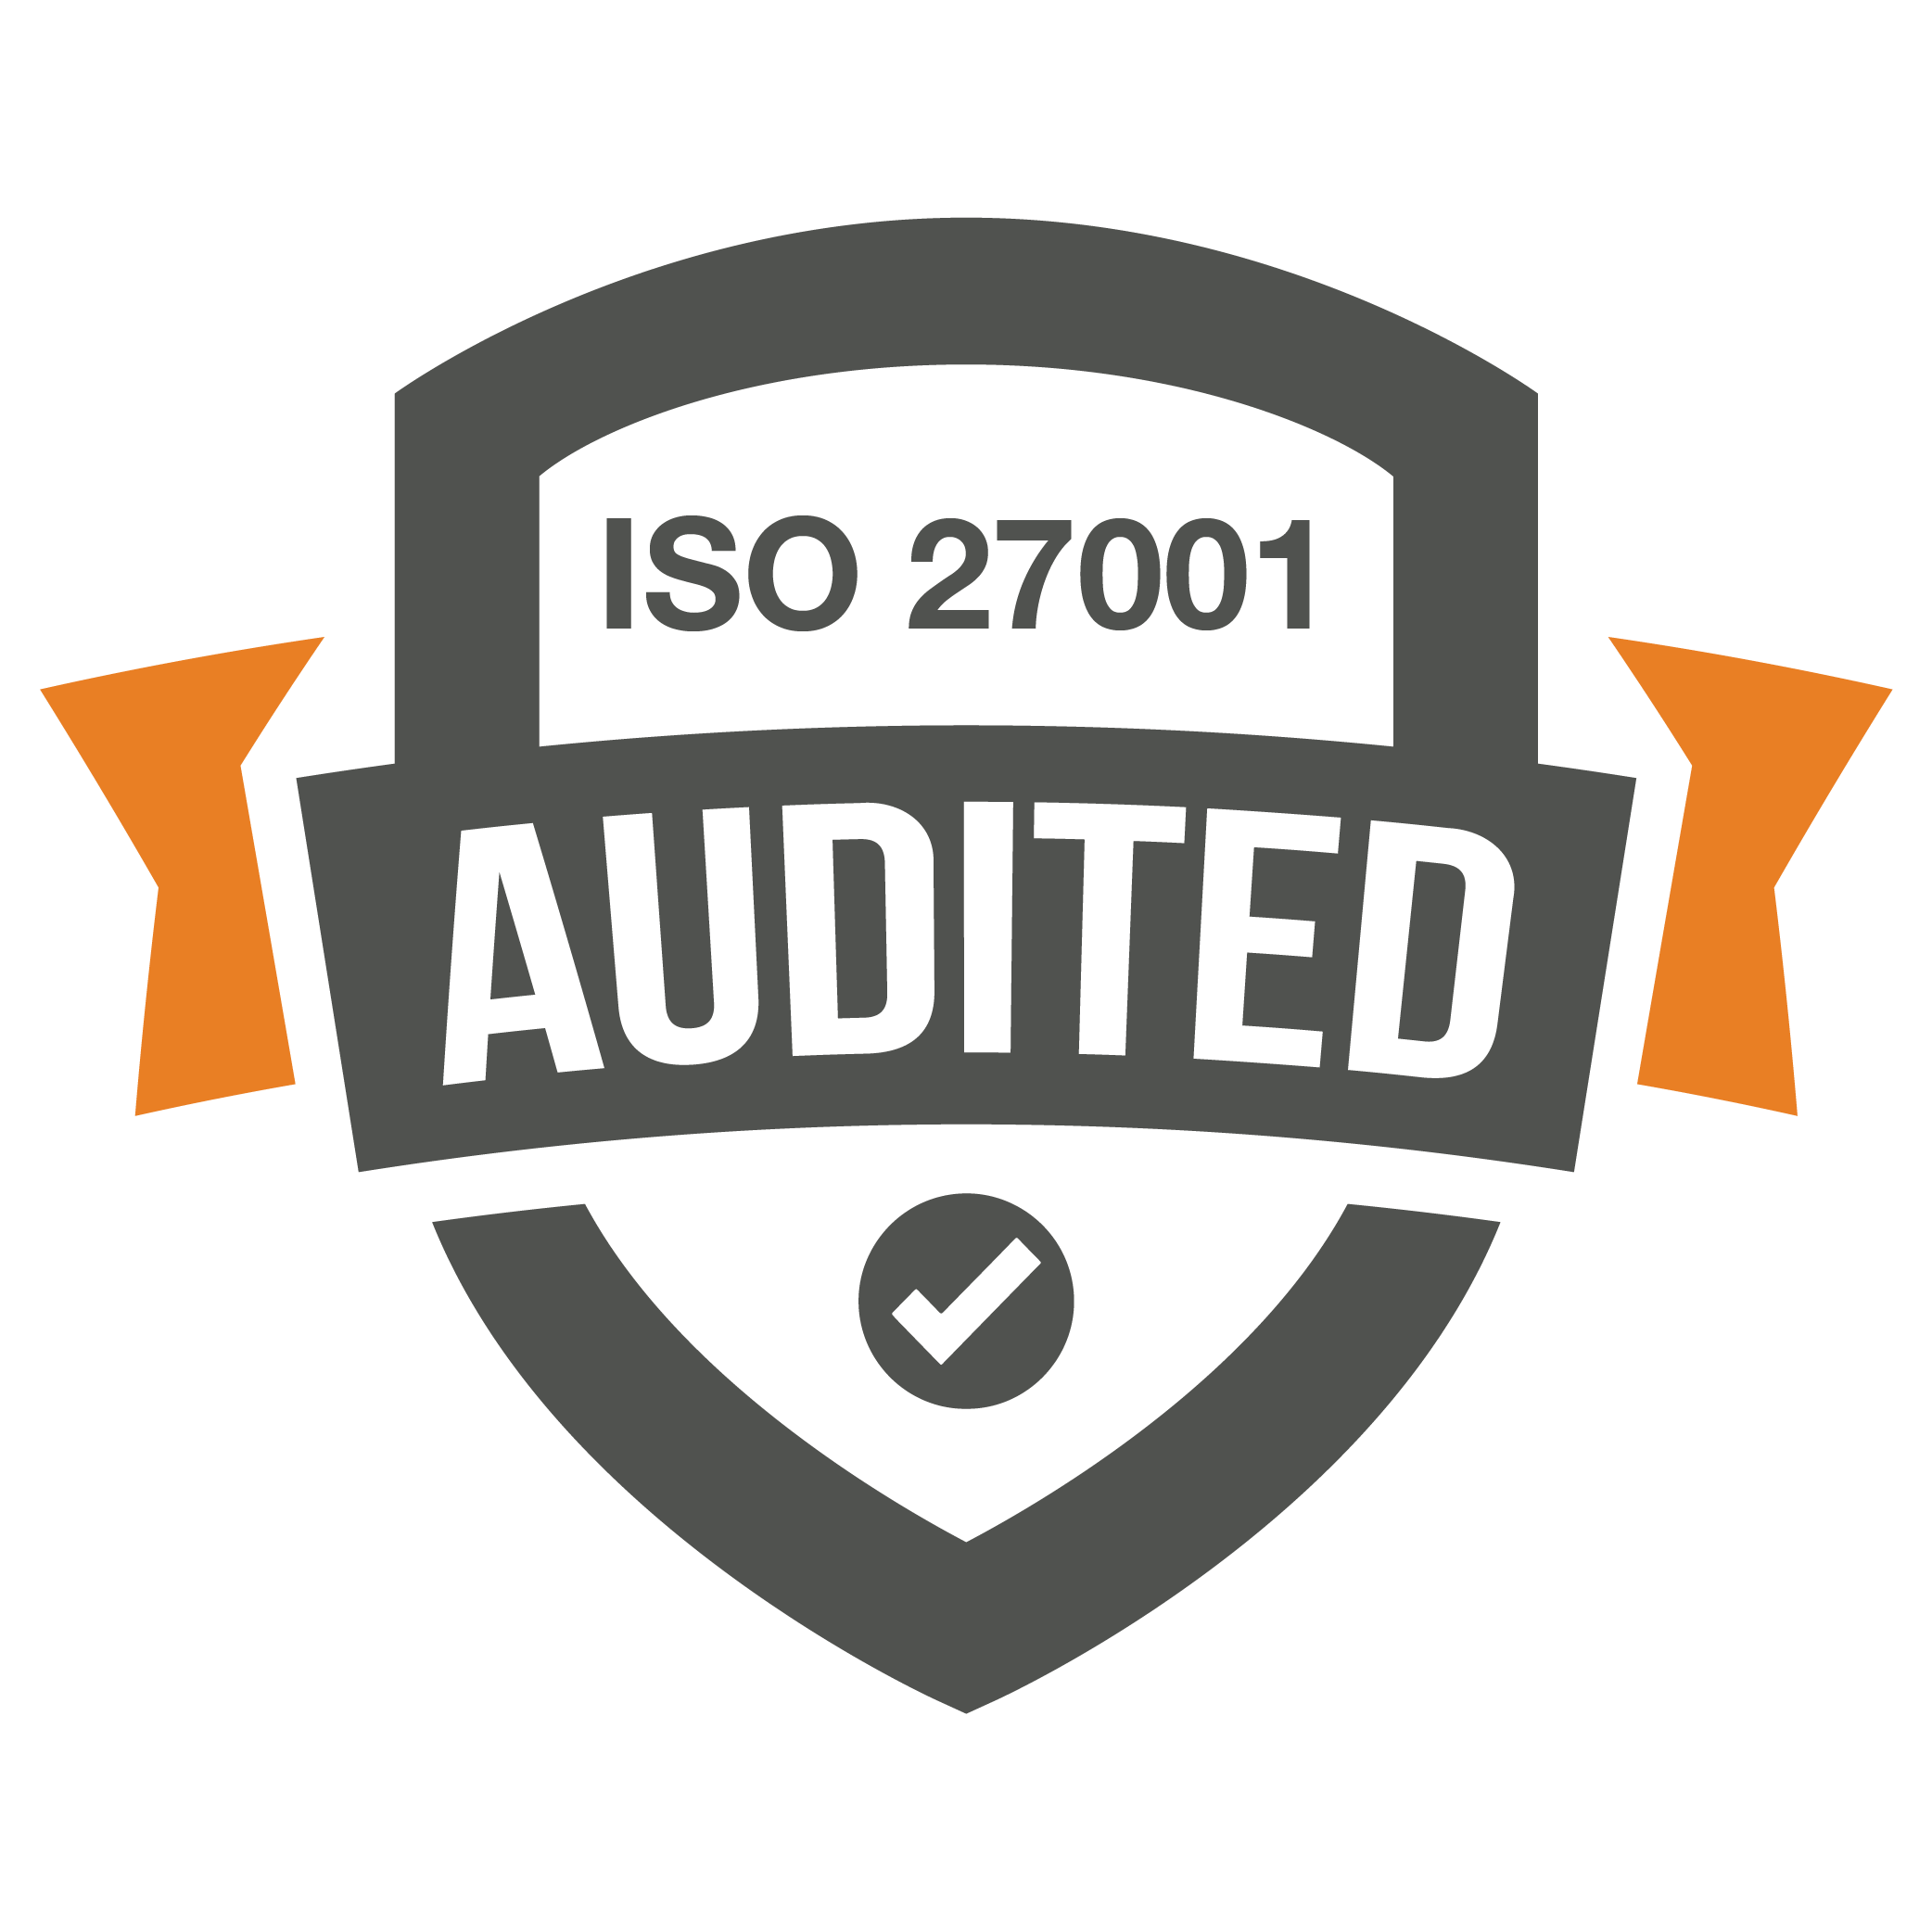 ISO 27001 Audited